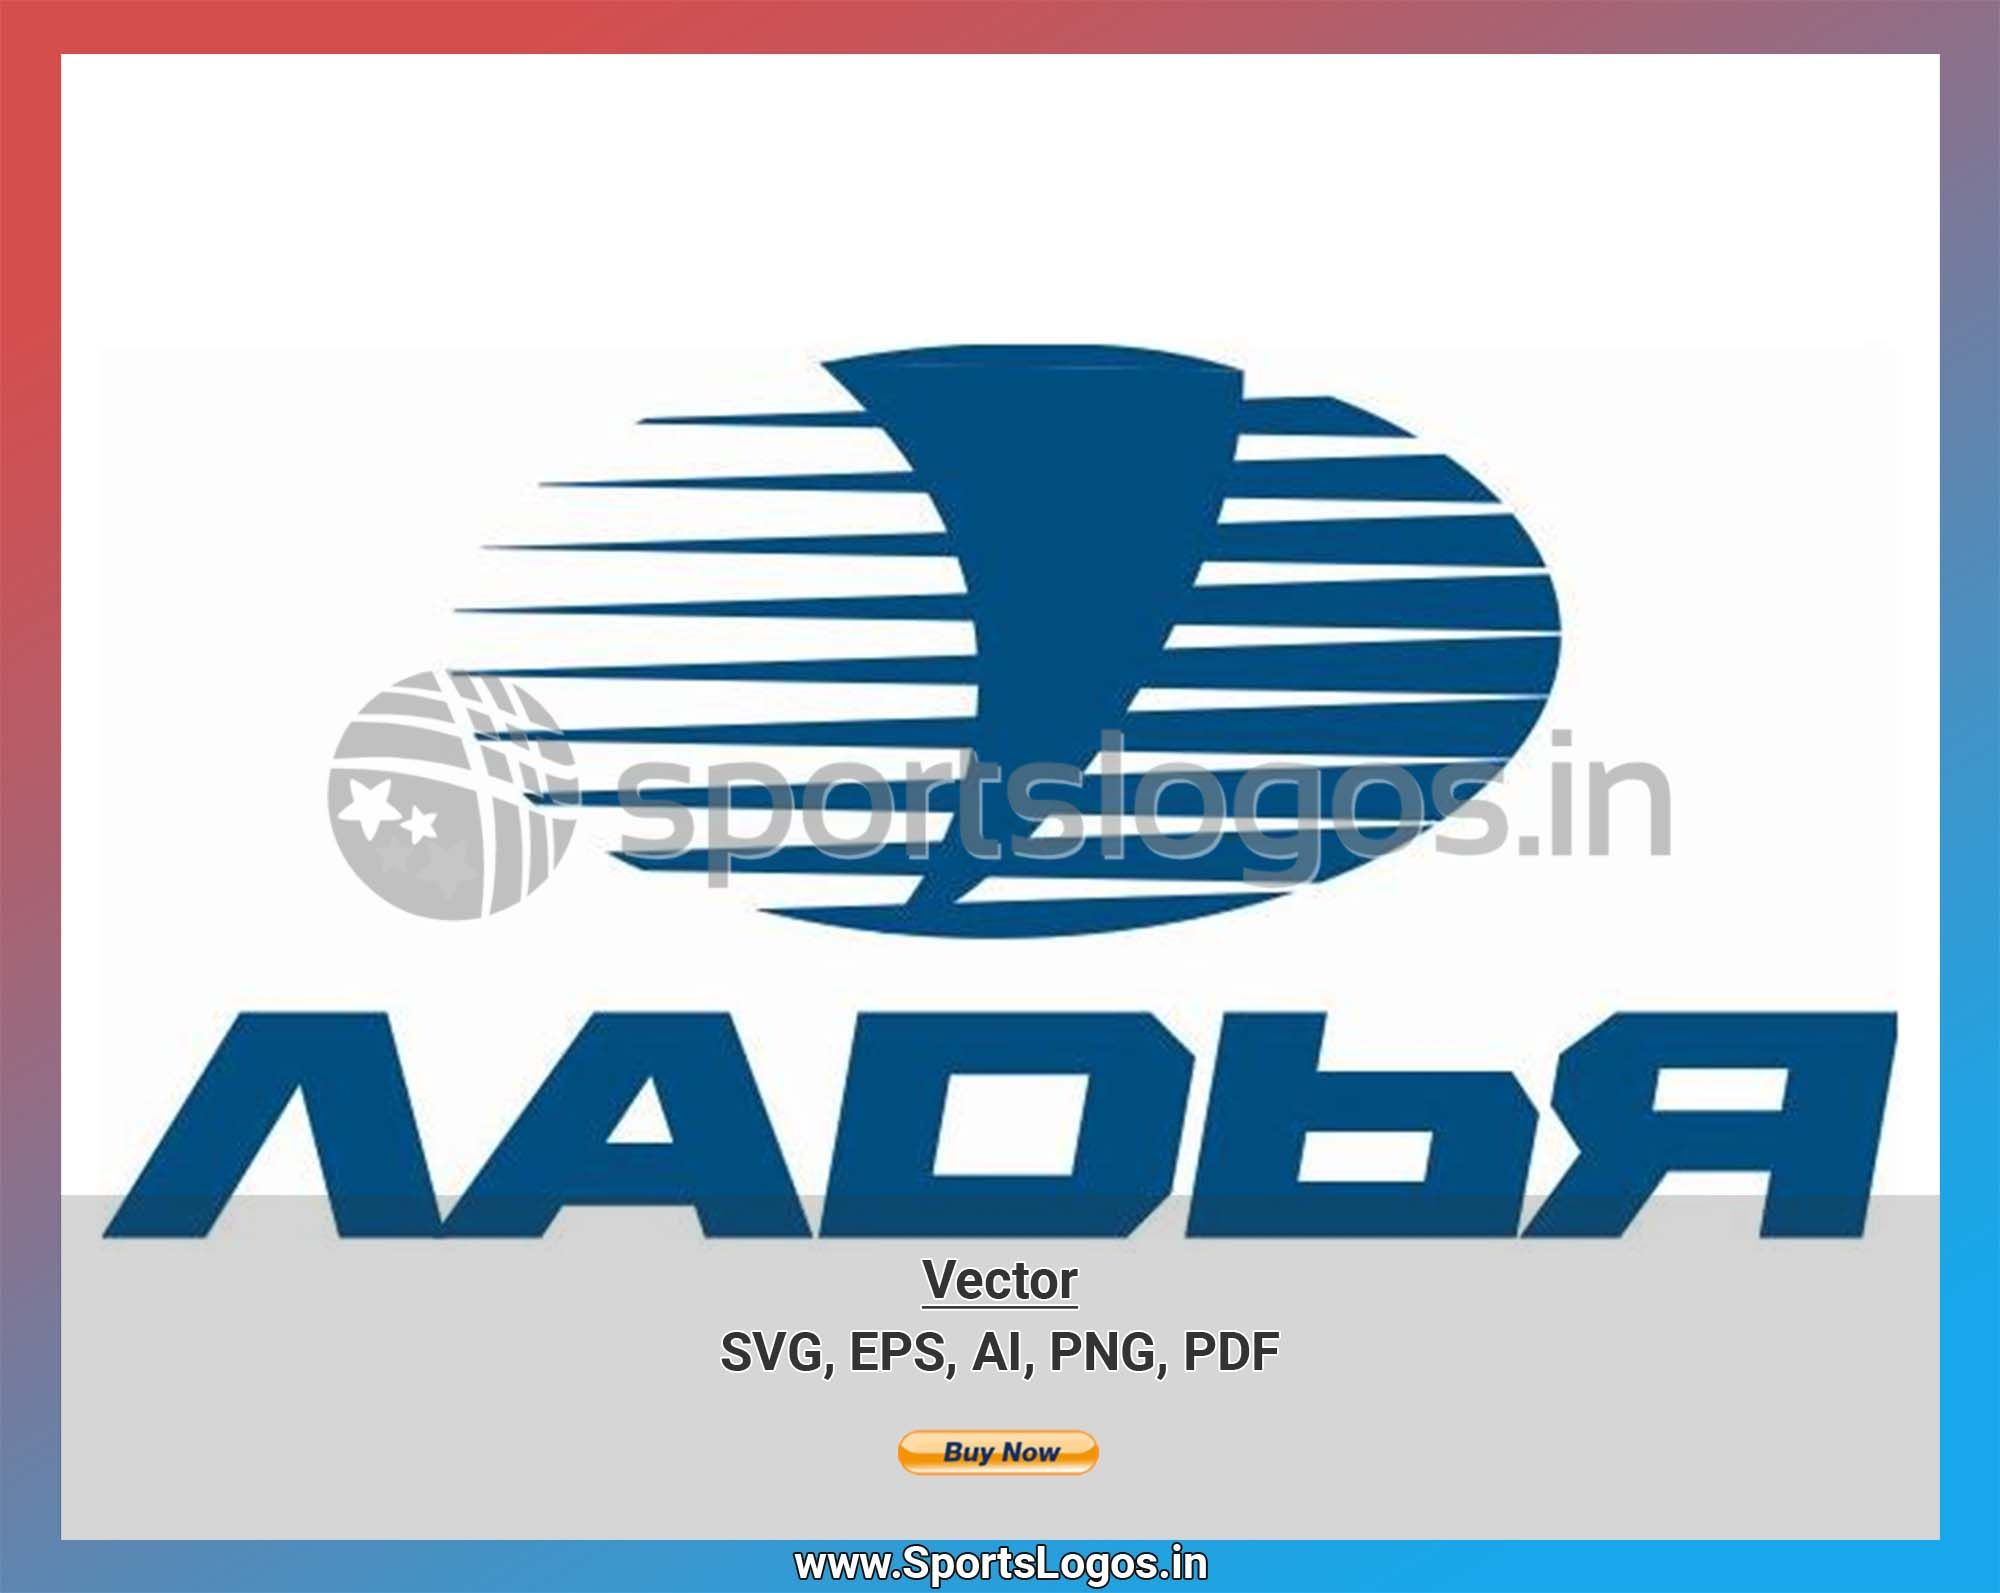 Ladya Hockey Sports Vector Svg Logo In 5 Formats Spln002260 Sports Logos Embroidery Vector For Nfl Nba Nhl Mlb Milb And More In 2020 Sports Logo Embroidery Logo Sport Hockey